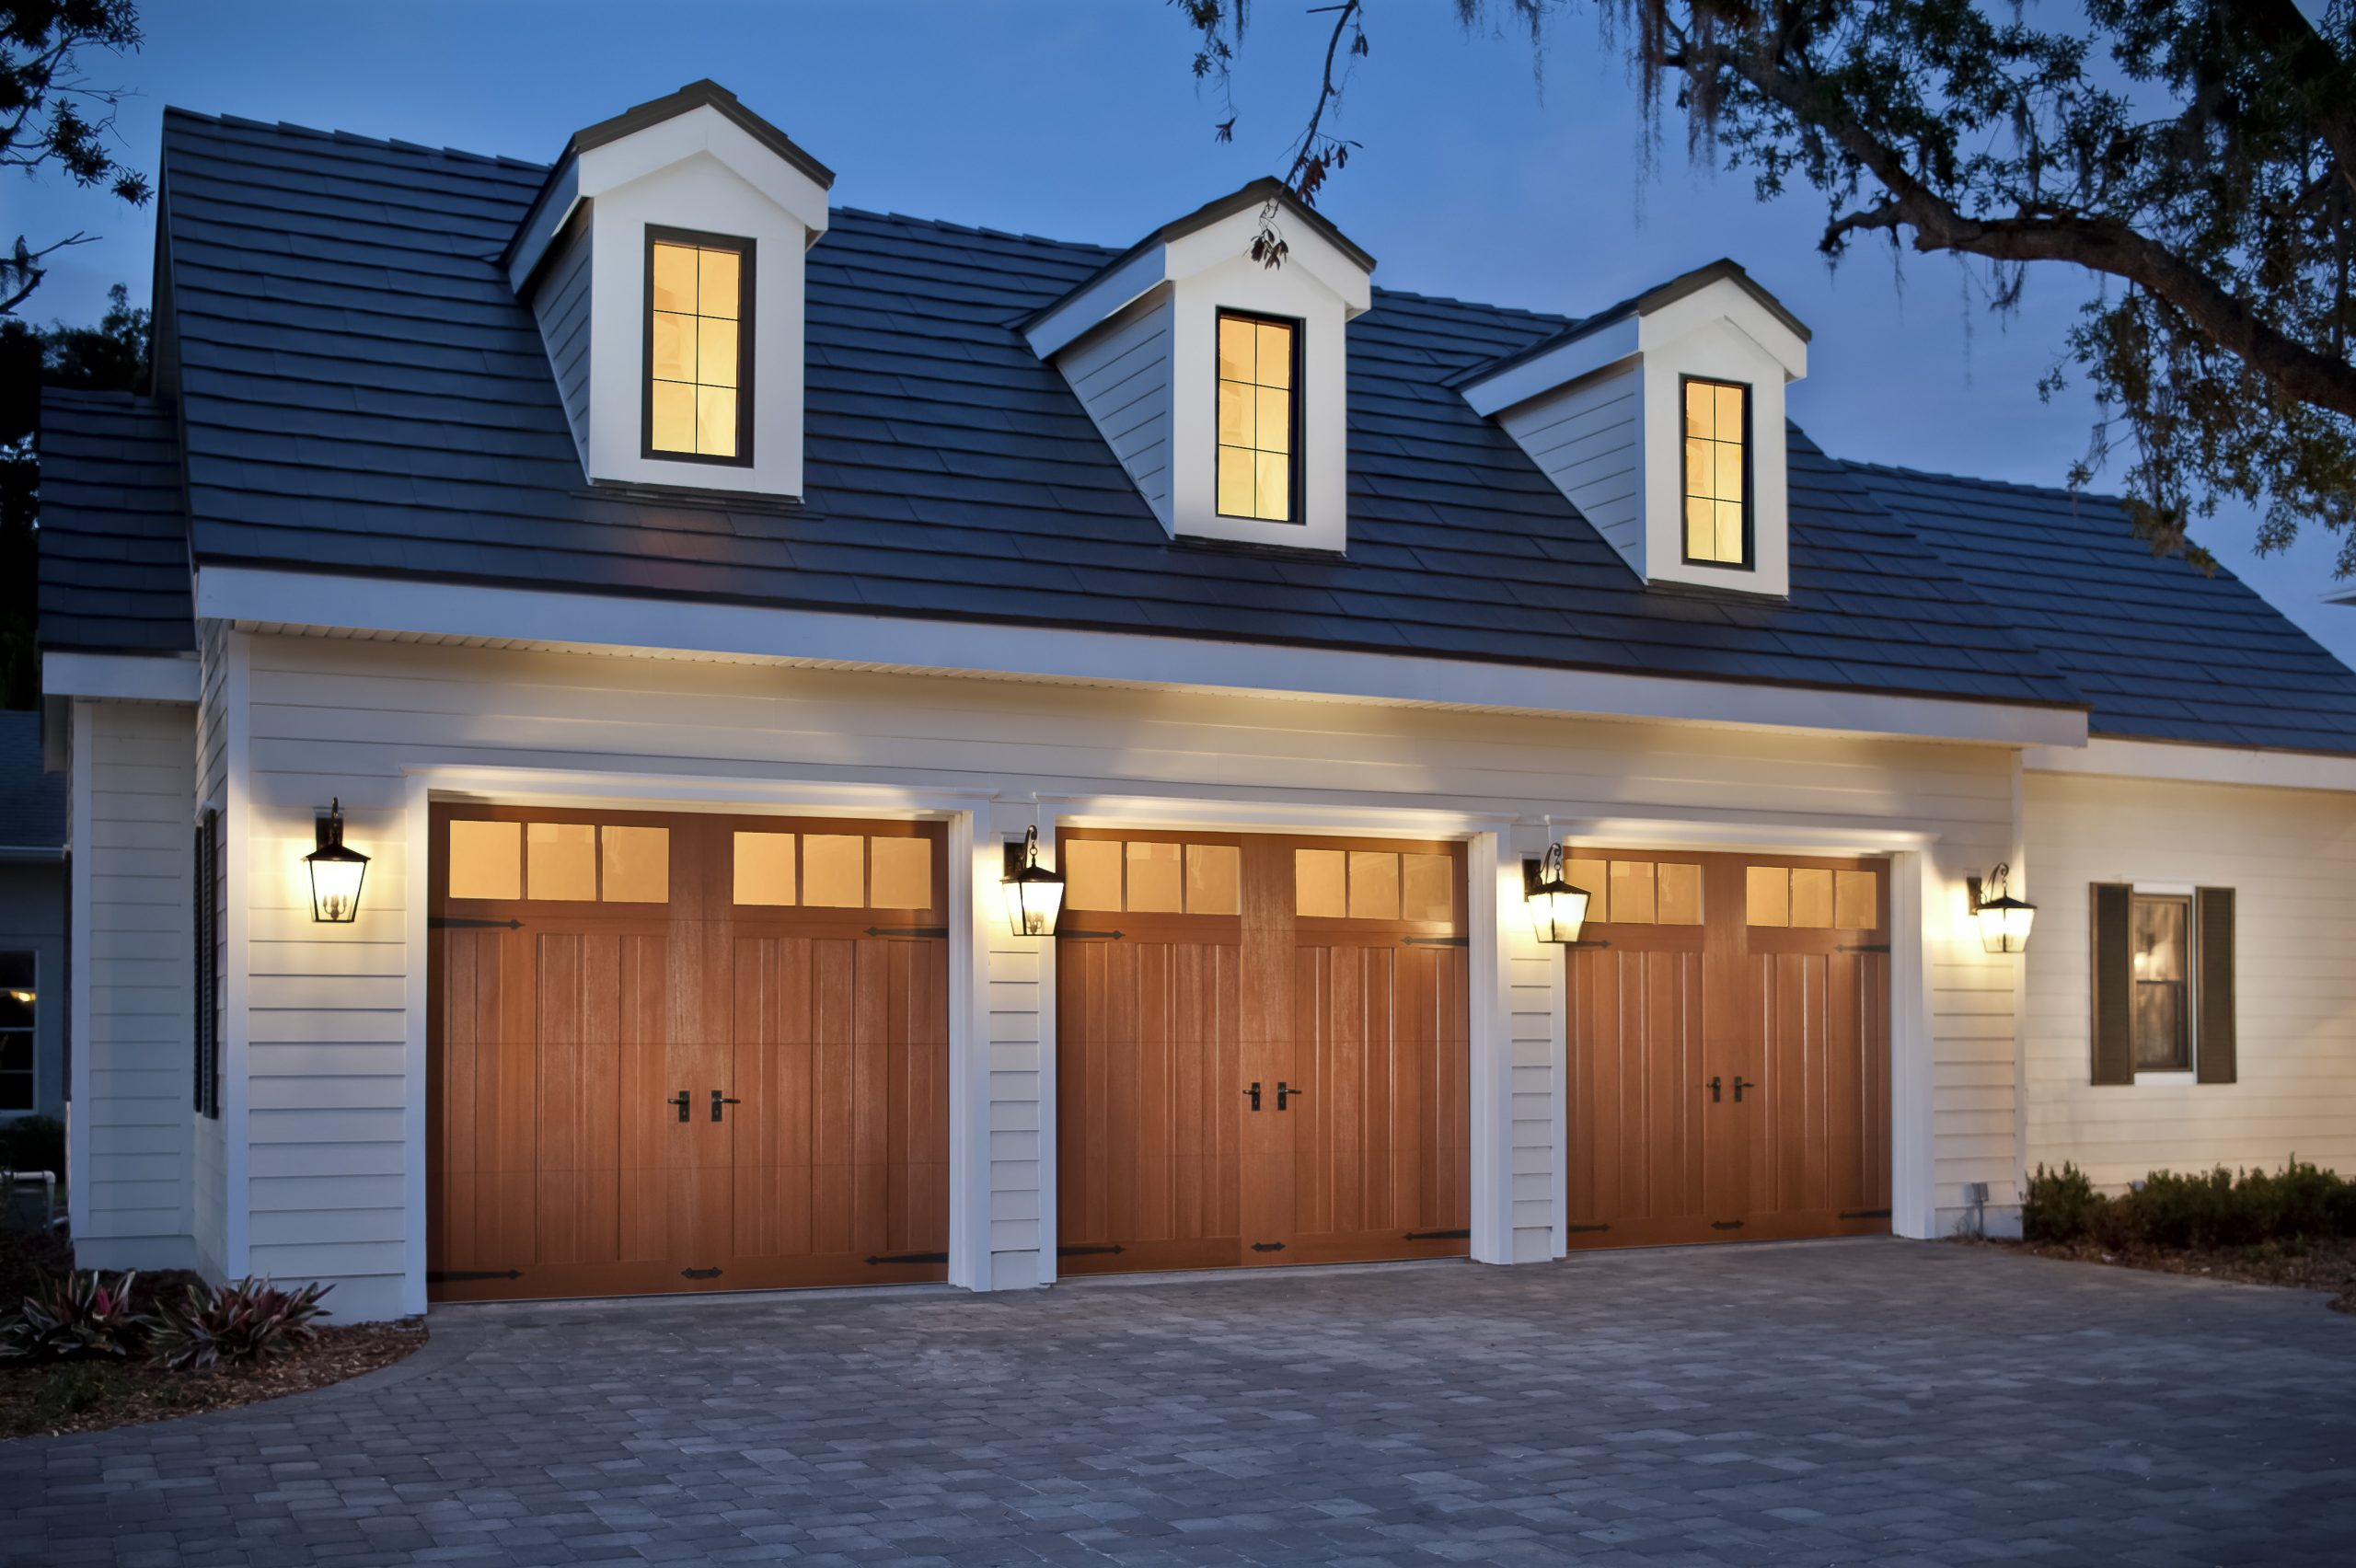 residential house with brown wooden garage doors